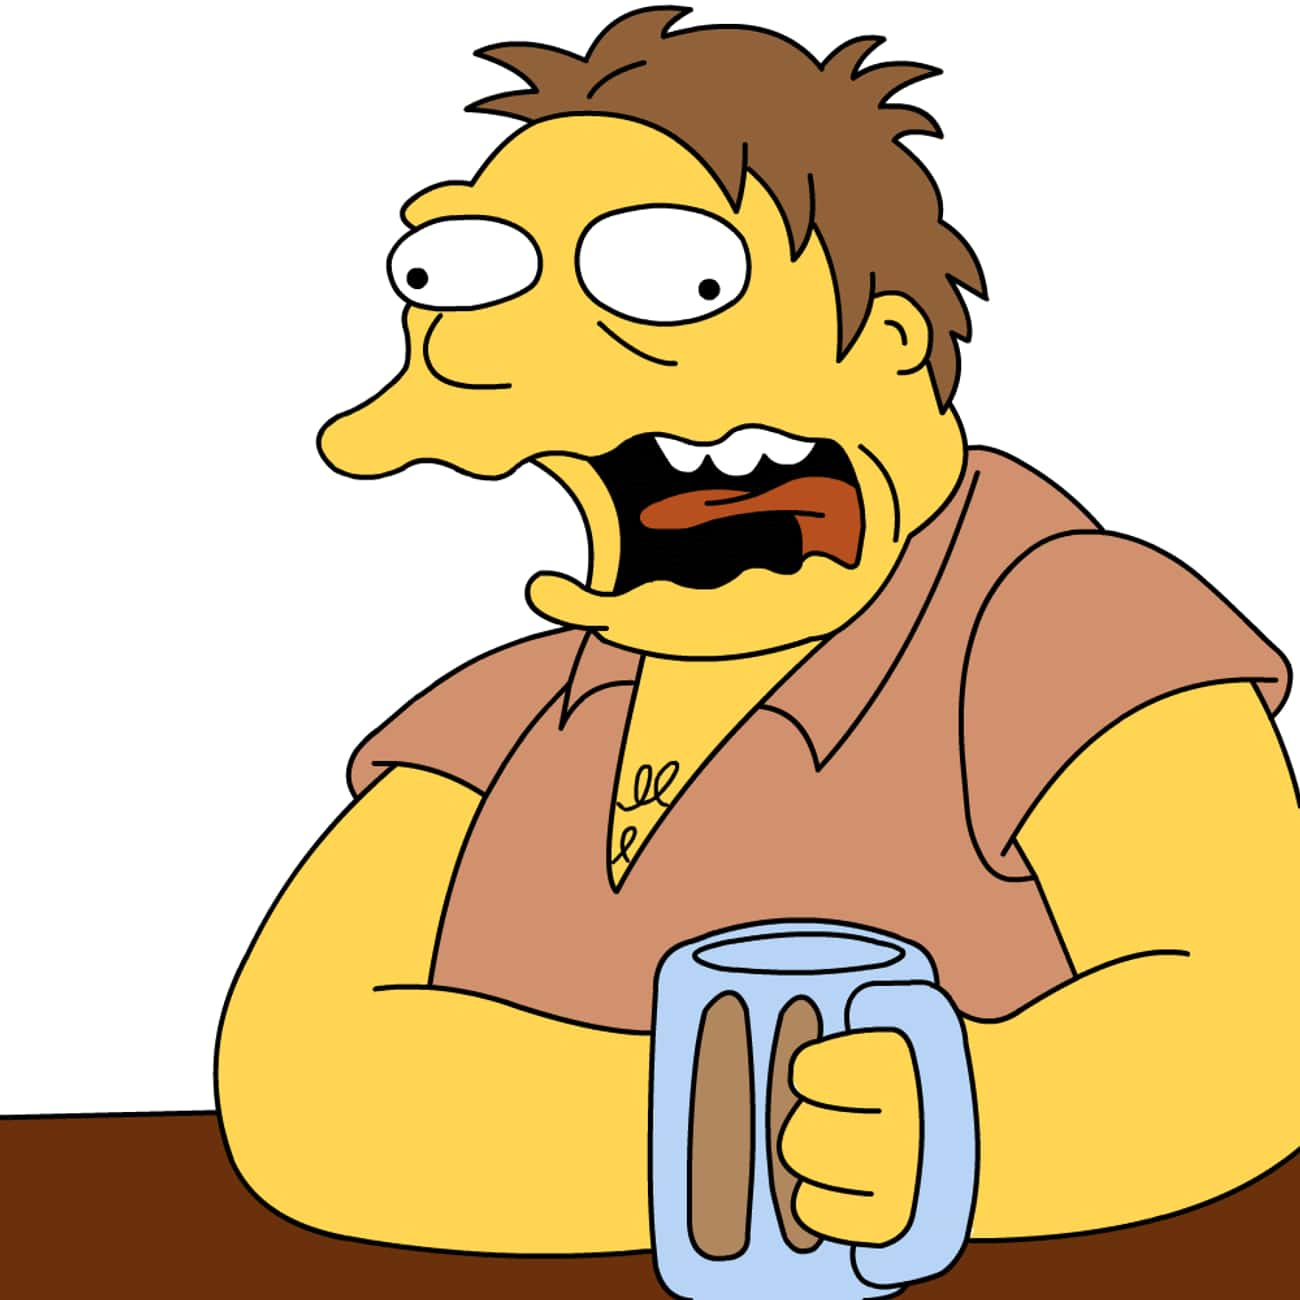 Barney Gumble is listed (or ranked) 4 on the list The Most Lovable TV Alcoholics